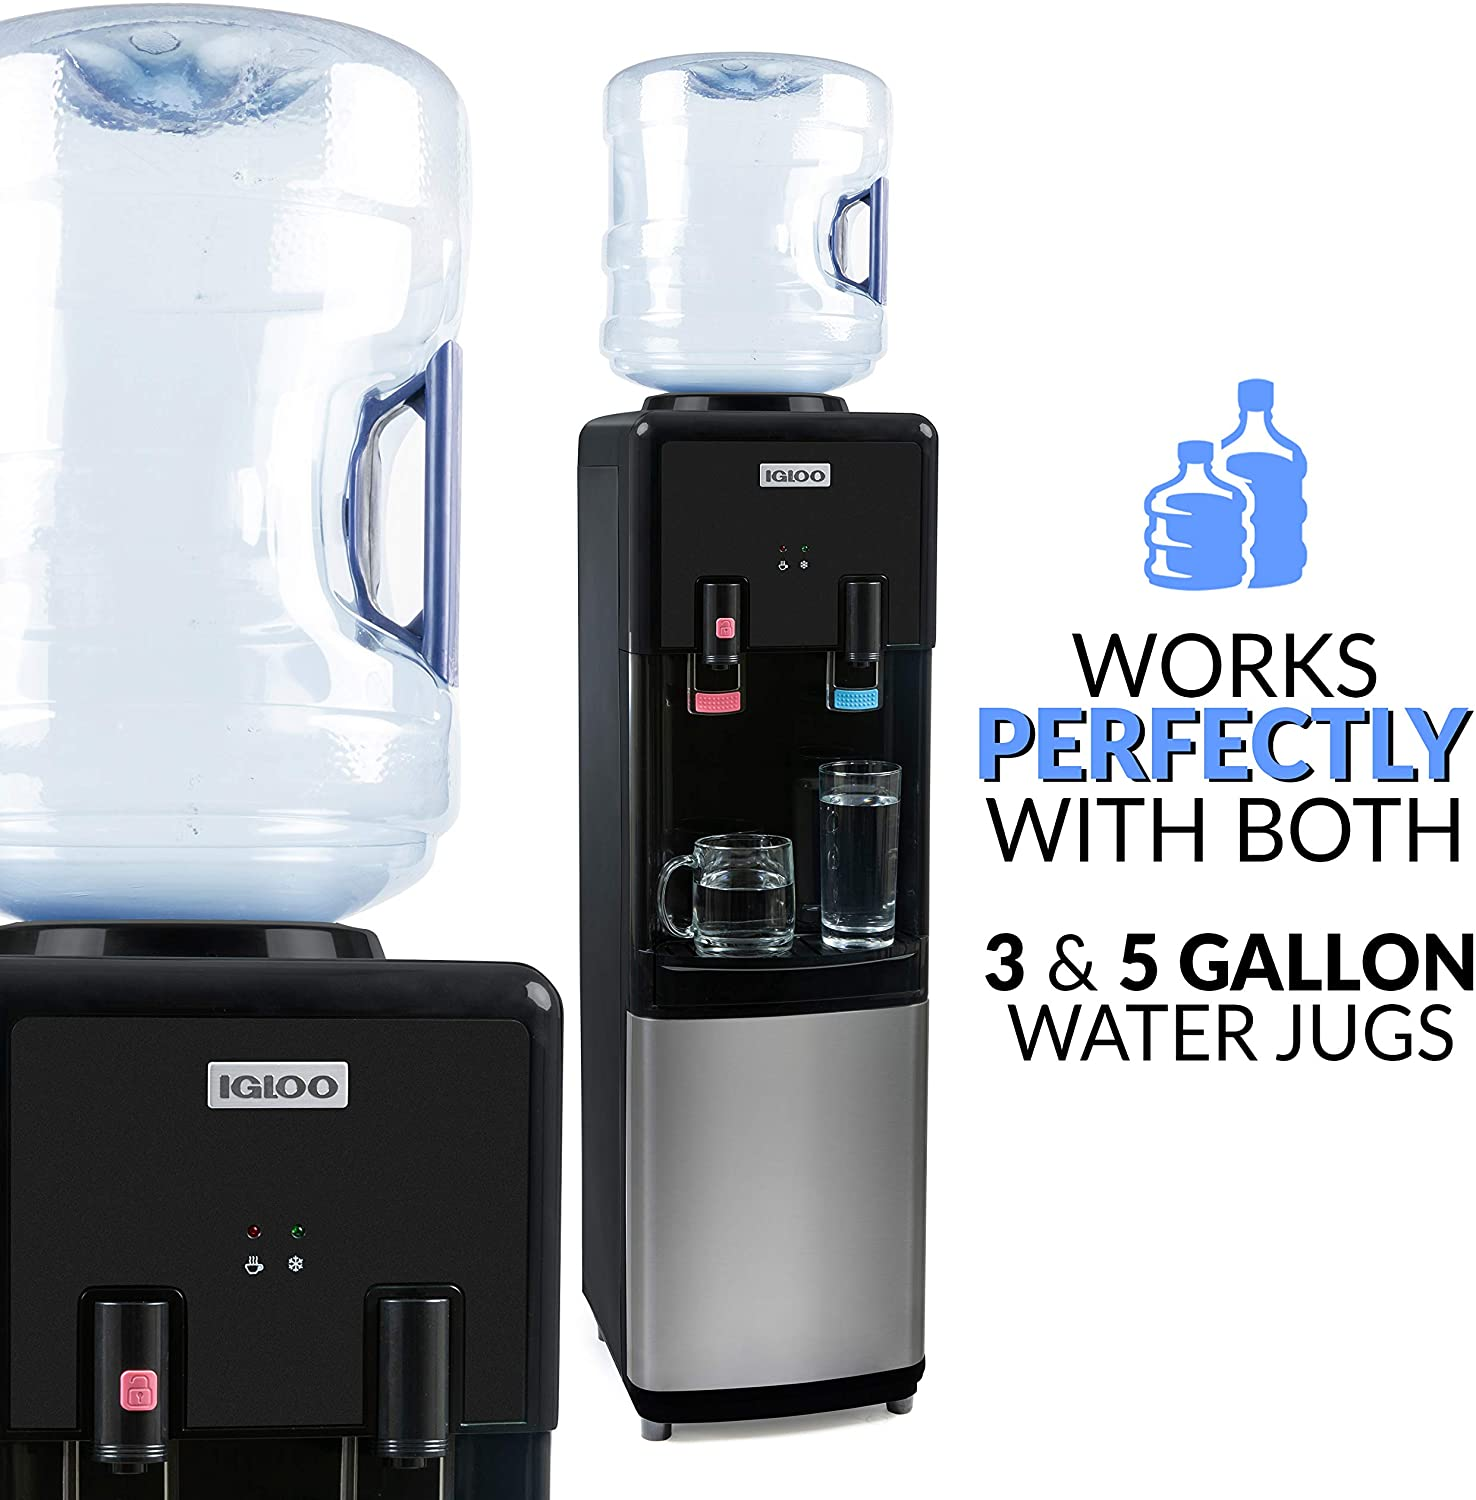 Igloo IWCTL352CHBKS Stainless Steel Hot & Cold Top-Loading Water Cooler Dispenser